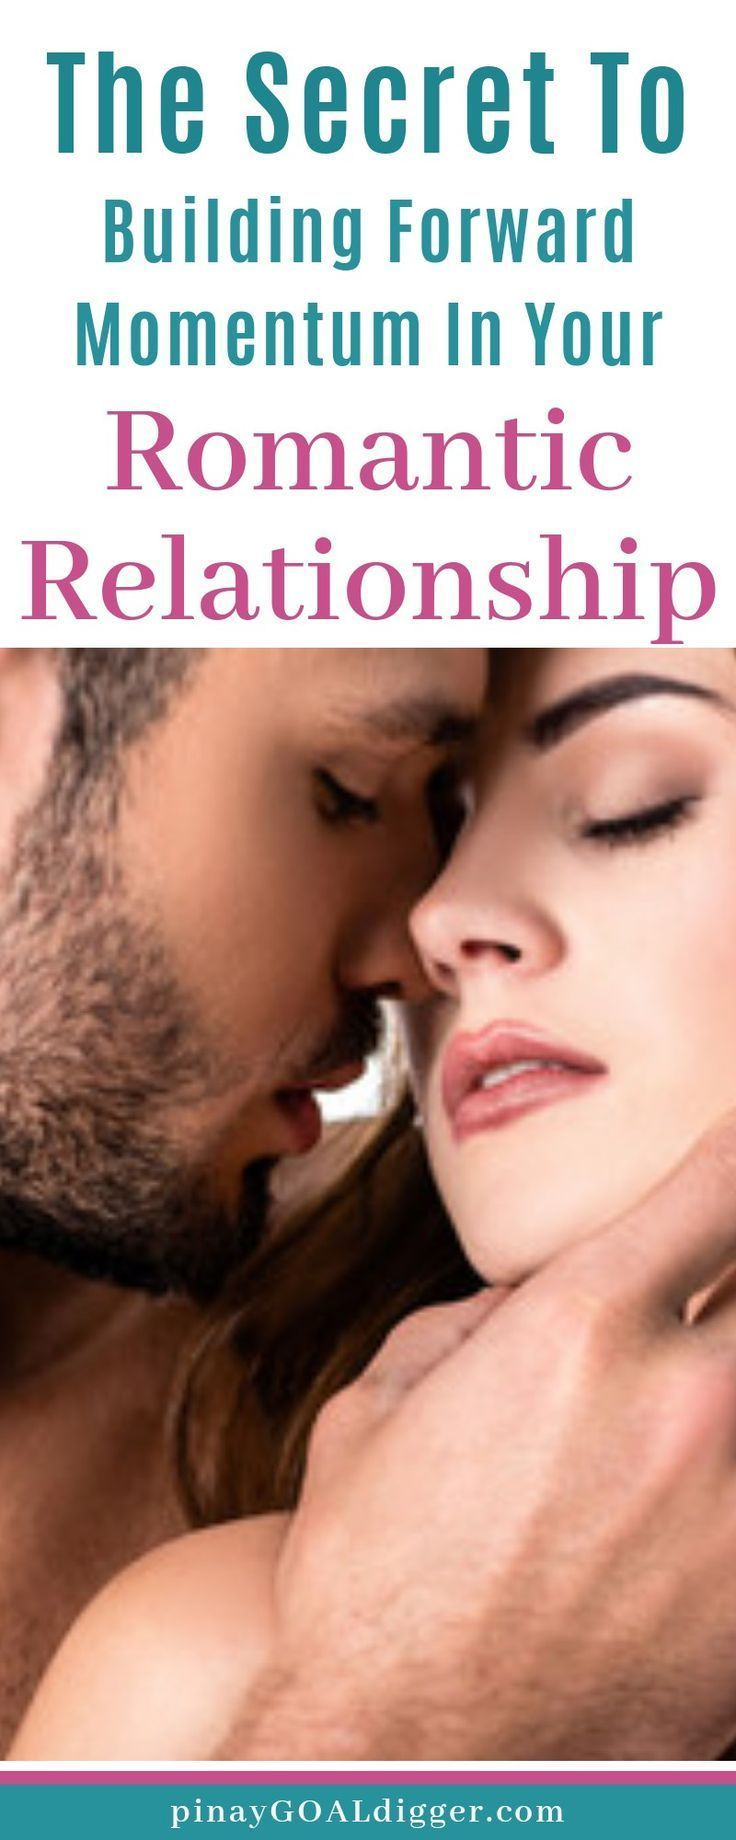 Kinky sex dating and relationships book in Garland